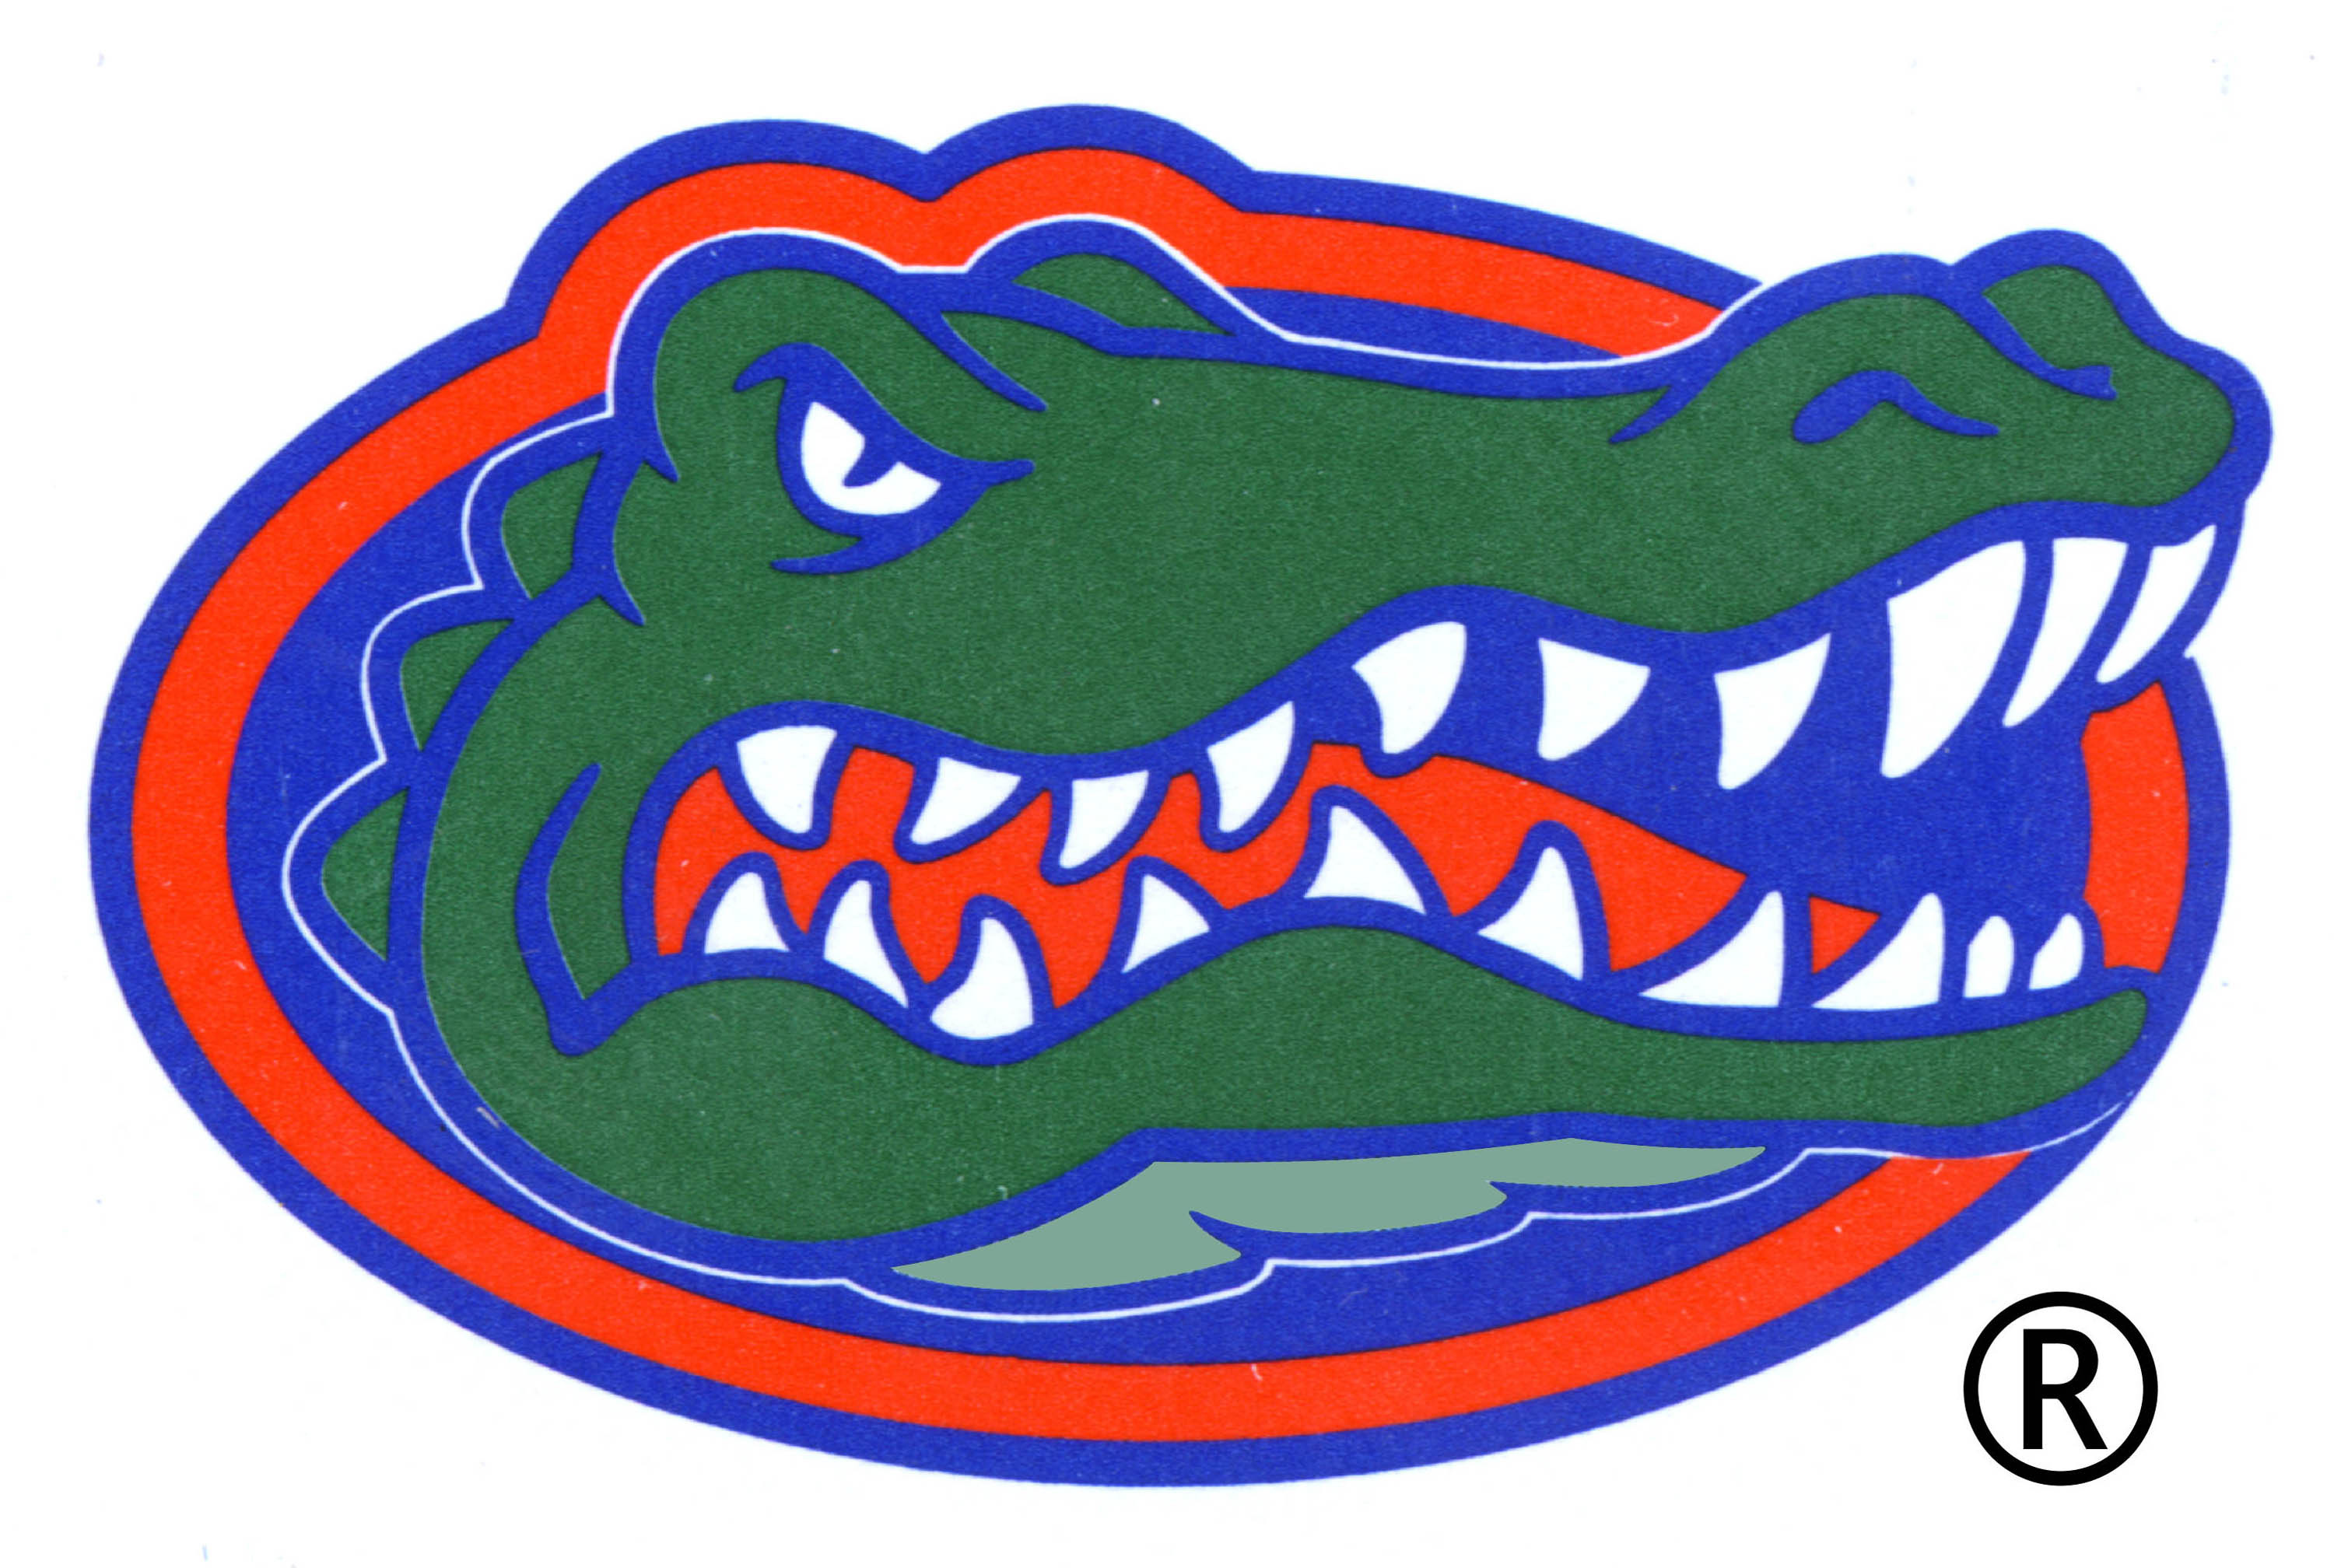 Uf Gator Logo Wallpaper Images & Pictures – Becuo